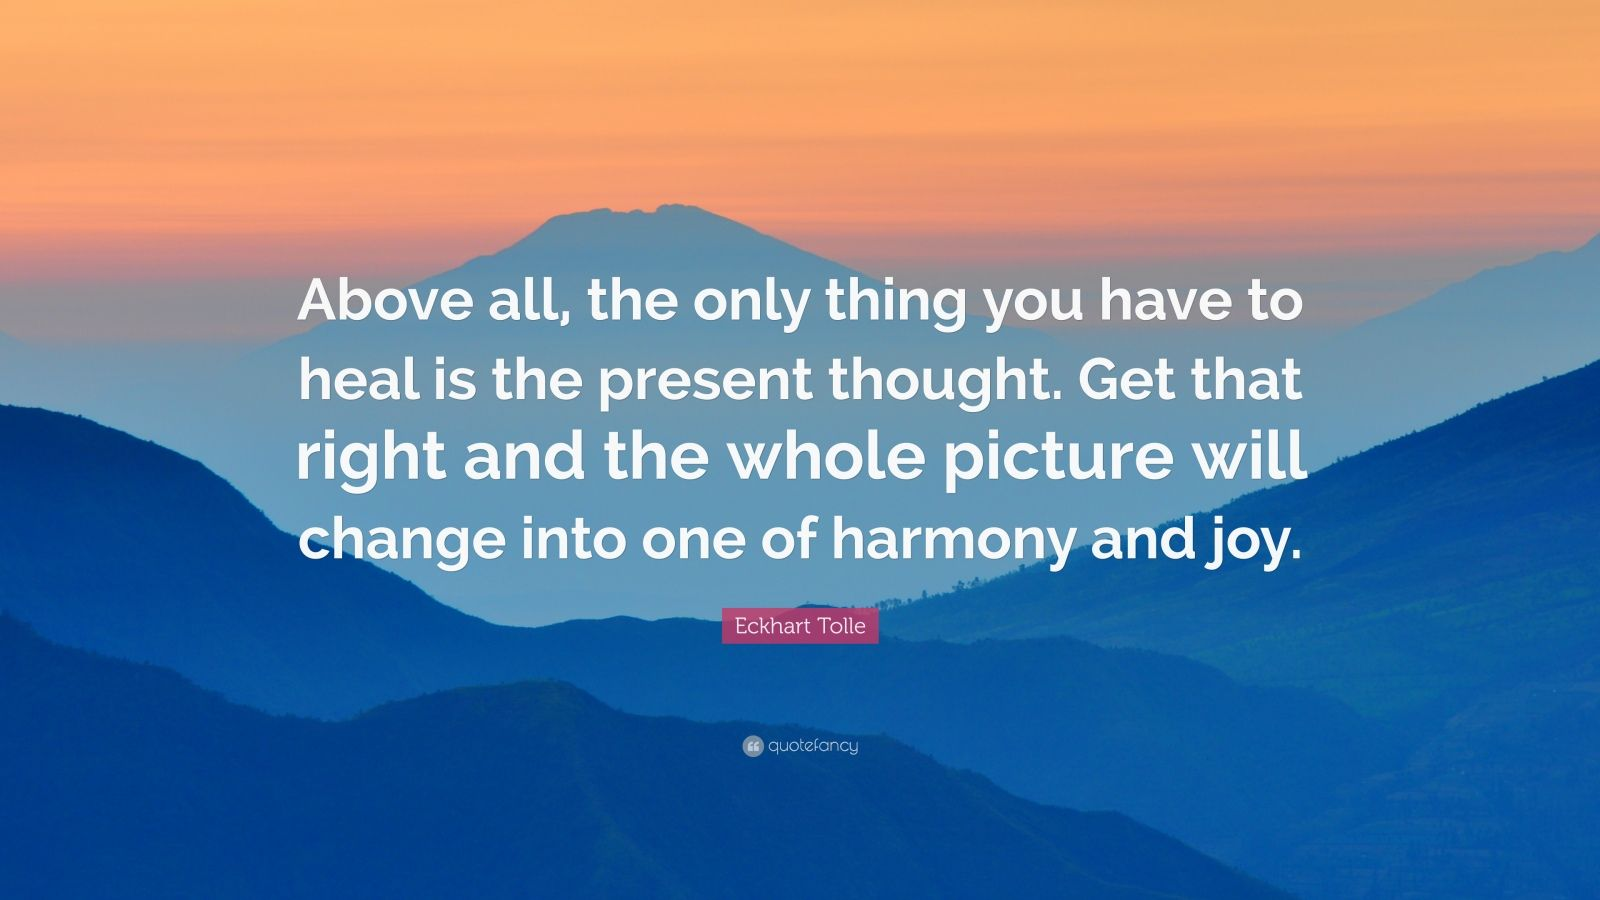 """Eckhart Tolle Quote: """"Above all, the only thing you have to heal is the present thought. Get that right and the whole picture will change into one of harmony and joy."""""""